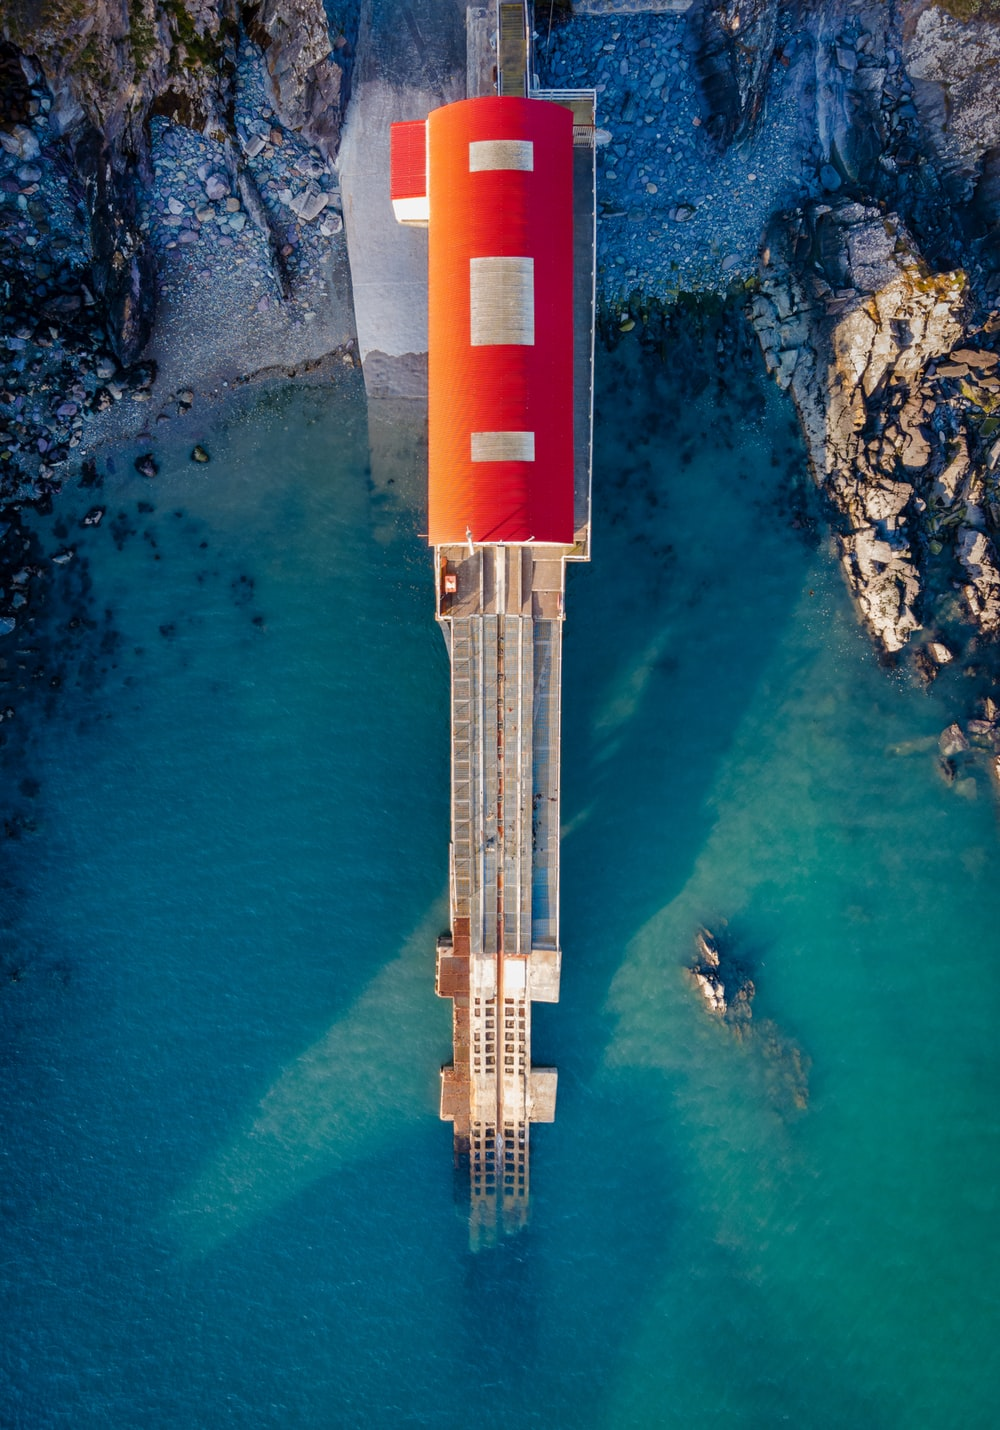 red and white tower near body of water during daytime